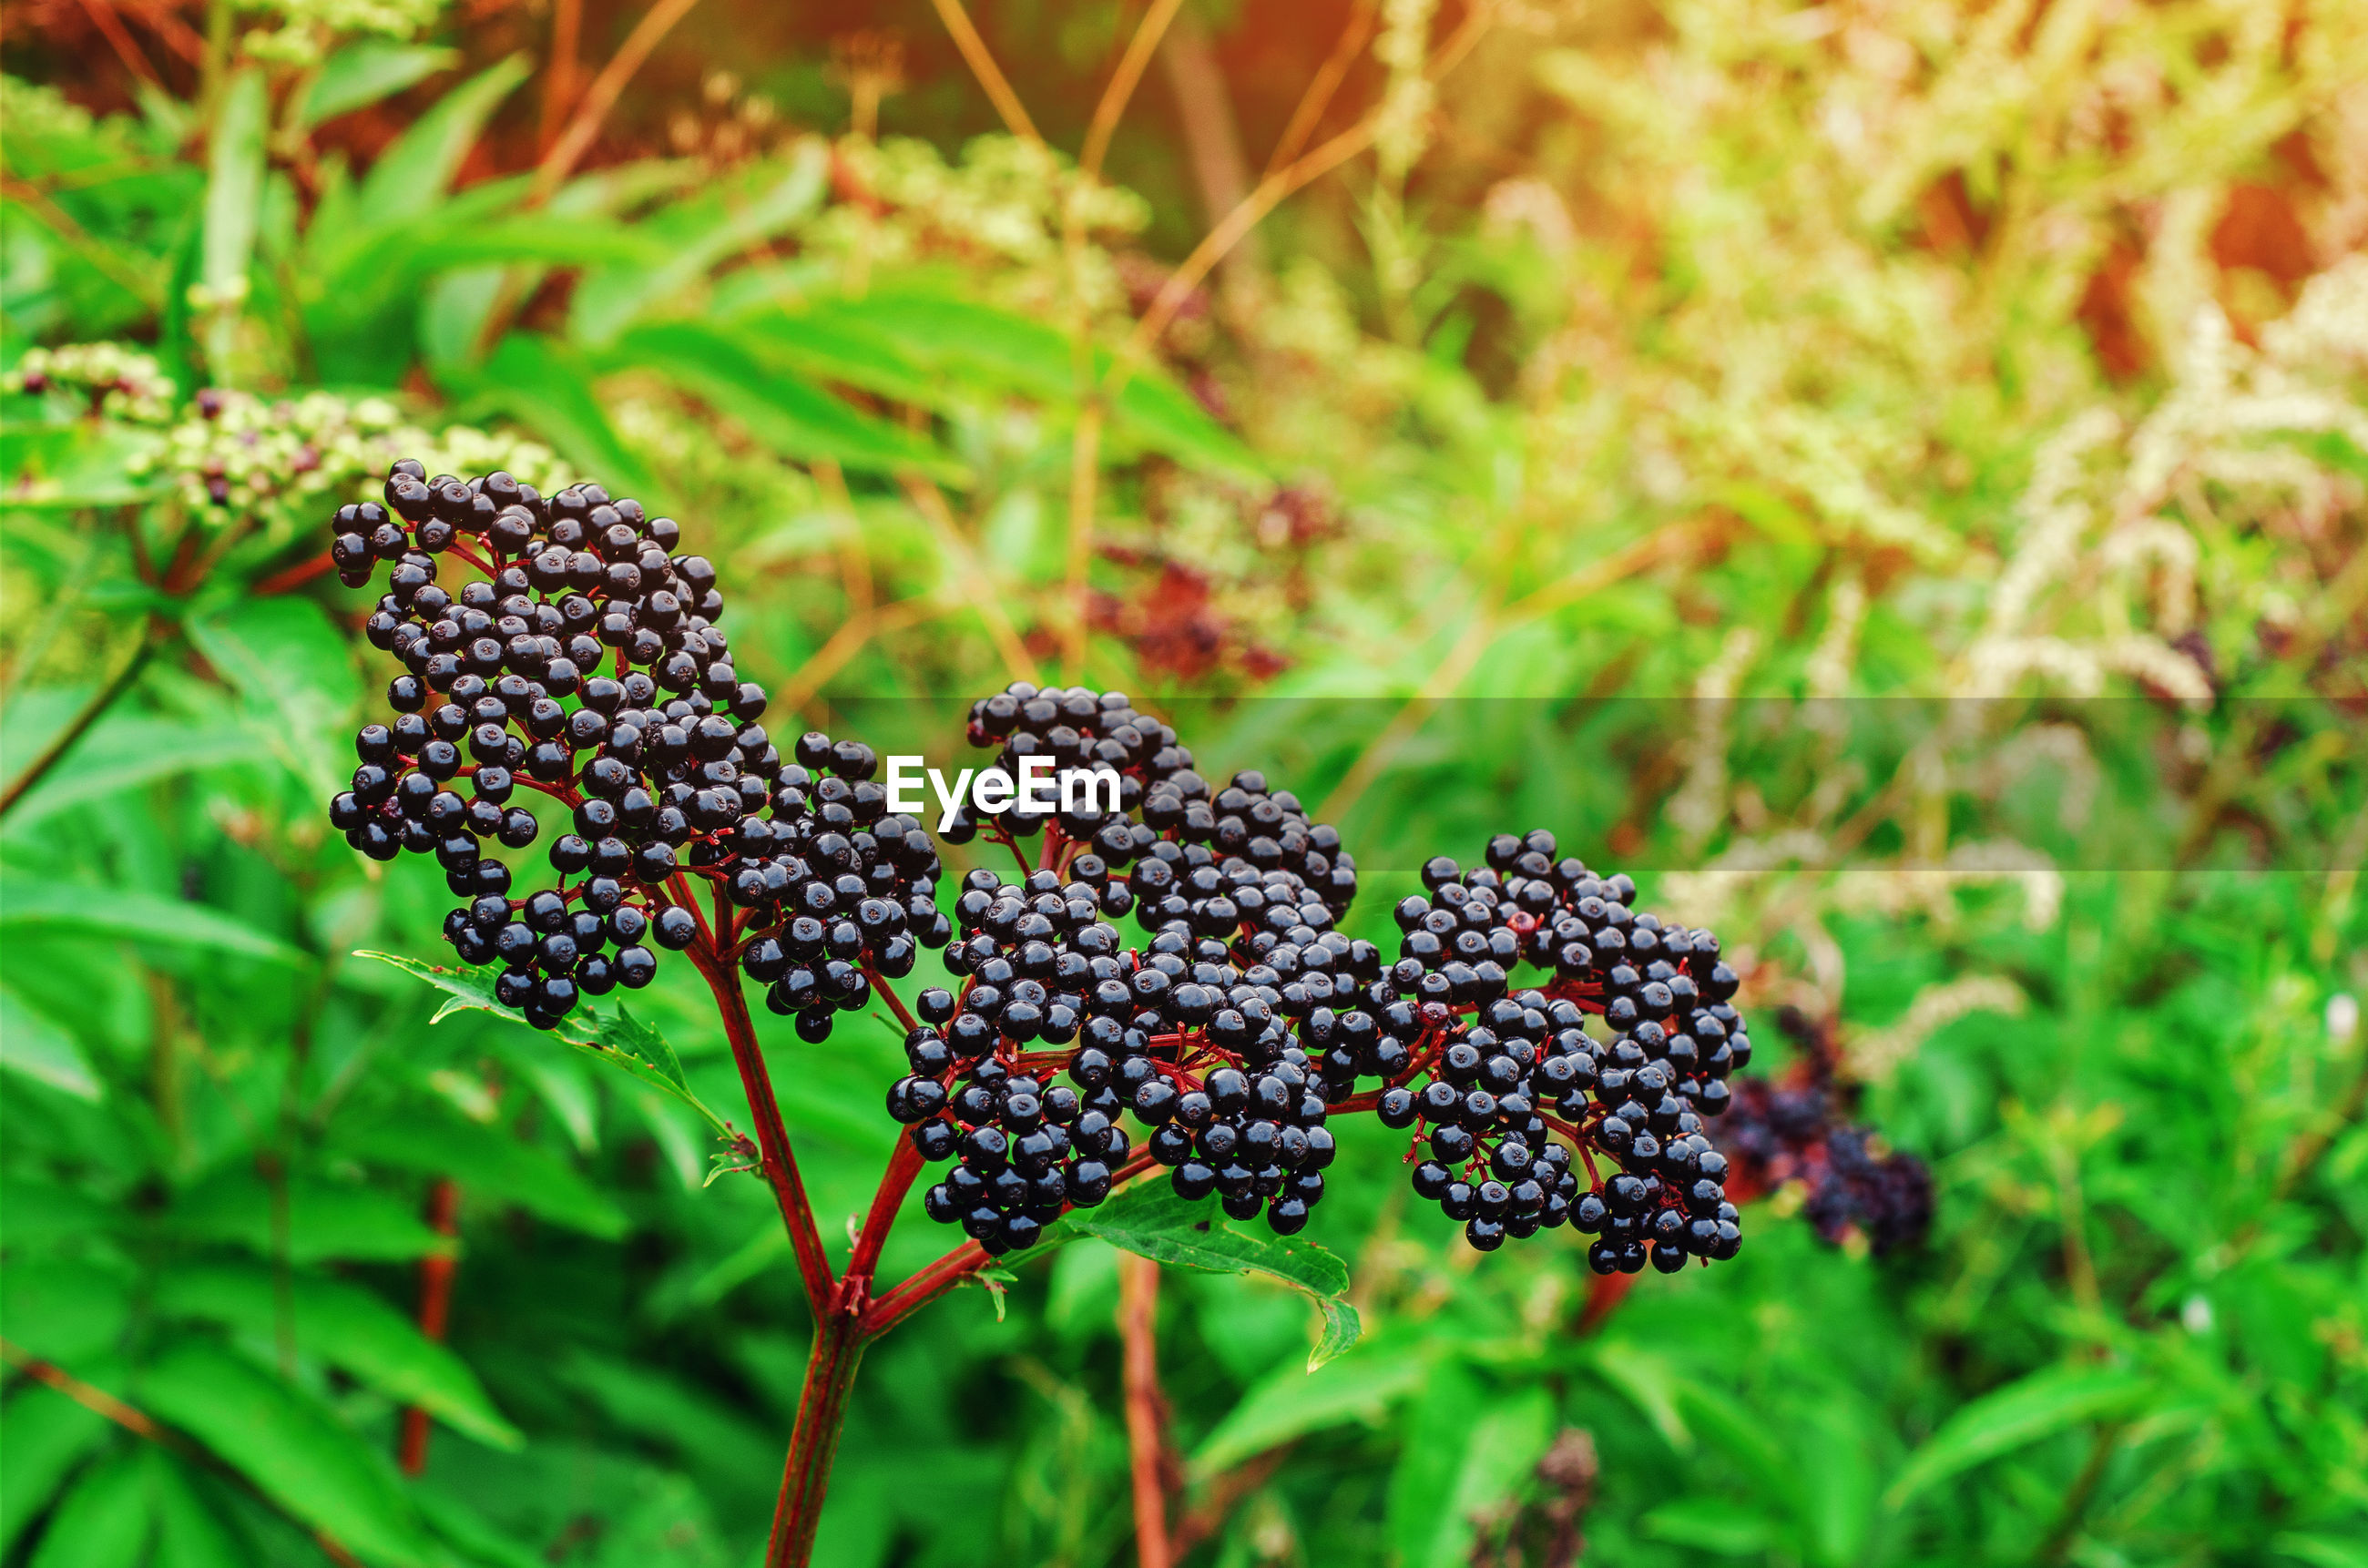 Ripe berries of black elderberry bunch on bushes in the forest among green leaves